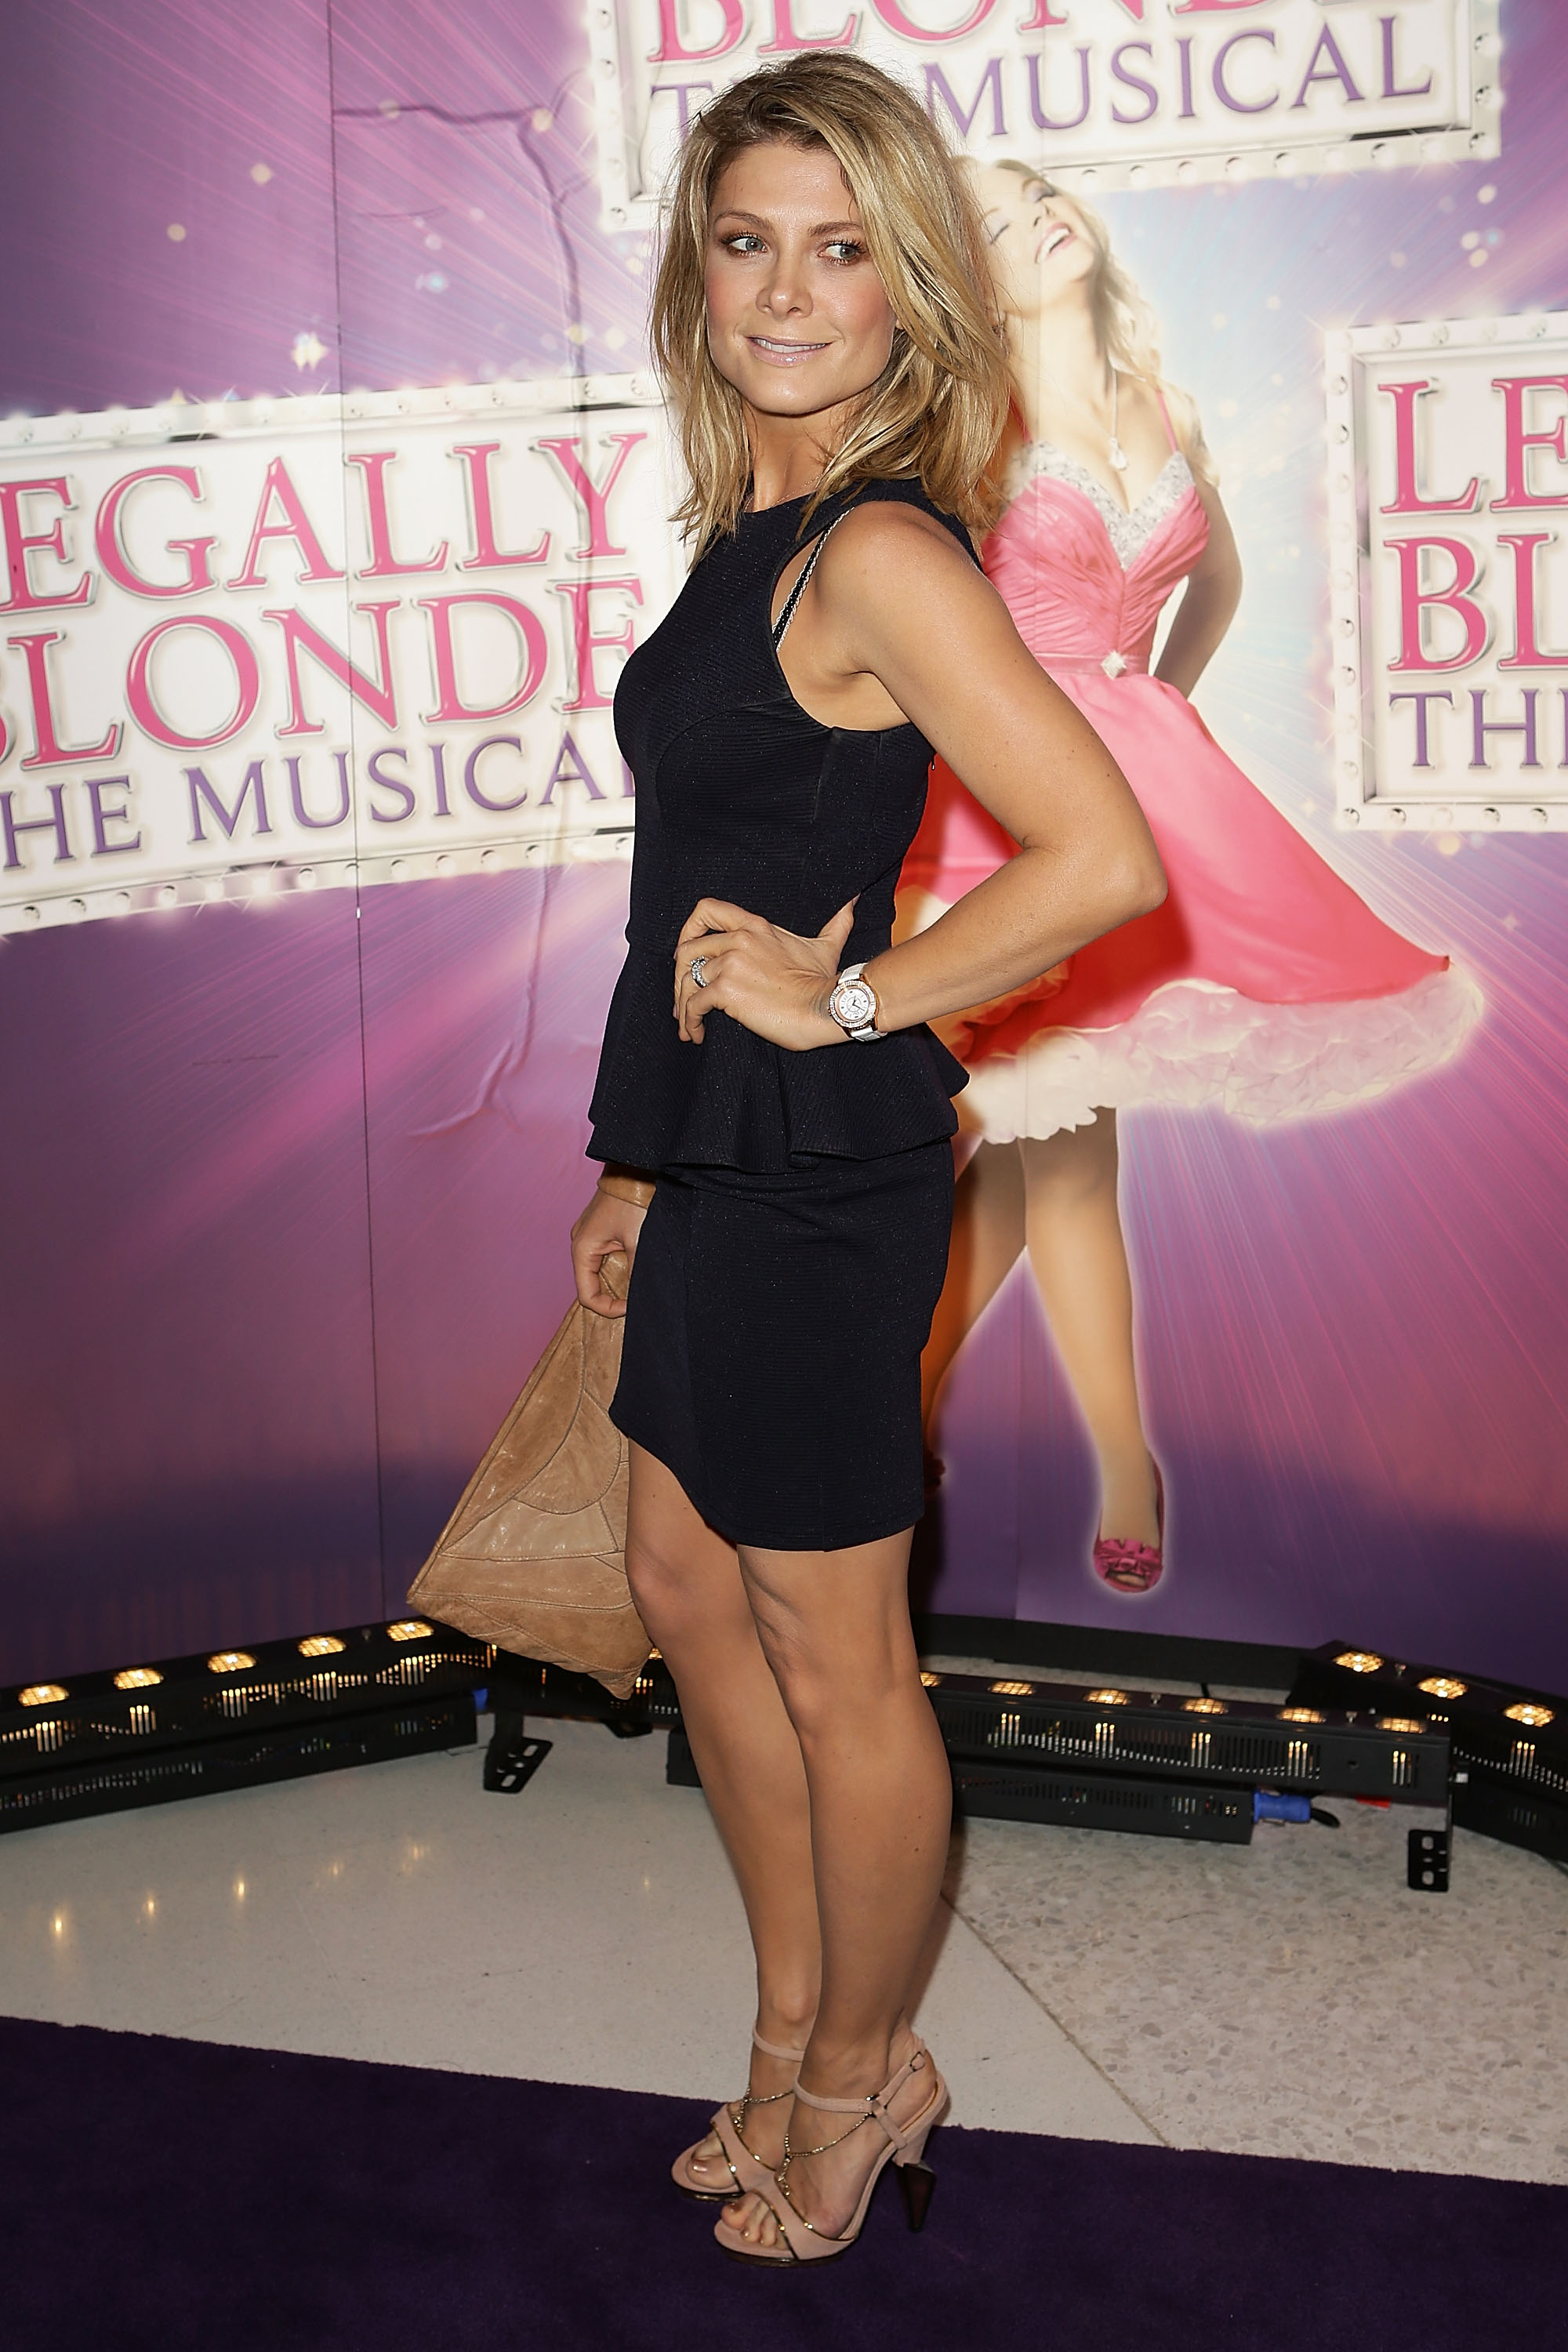 Natalie Bassingthwaighte Legally Blonde Draws A Dressed